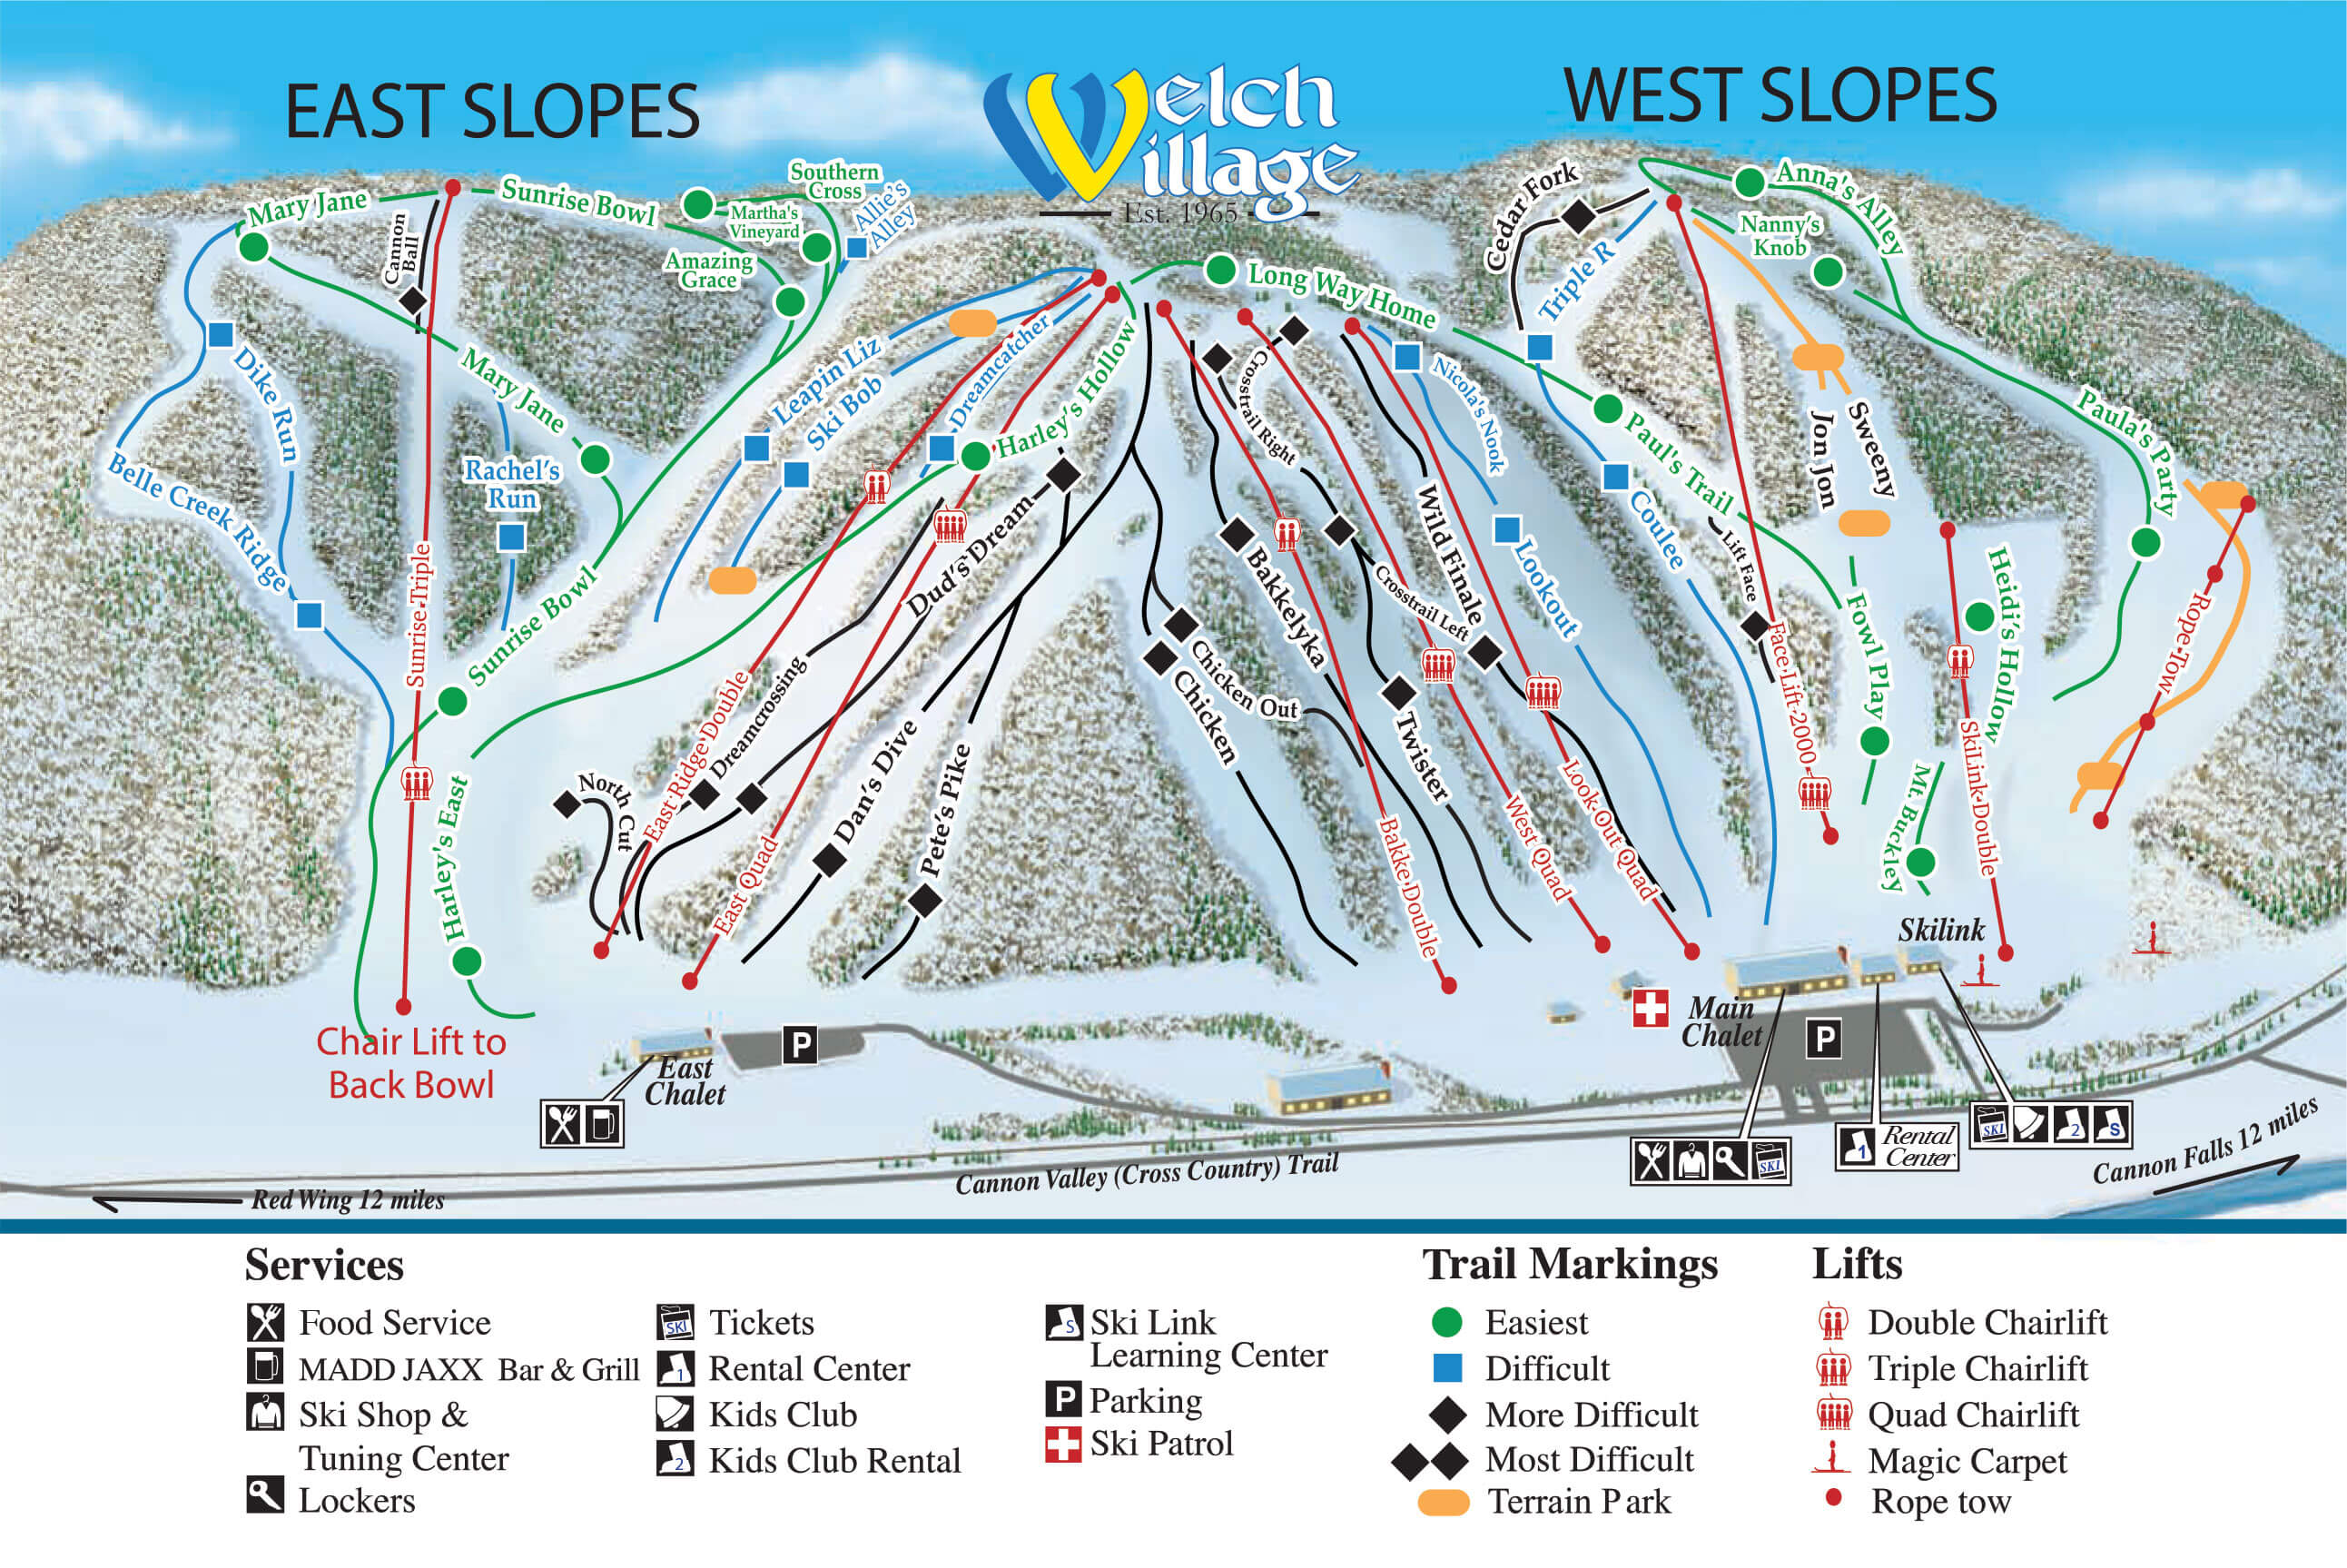 Welch Village East and West Slopes Trail Map